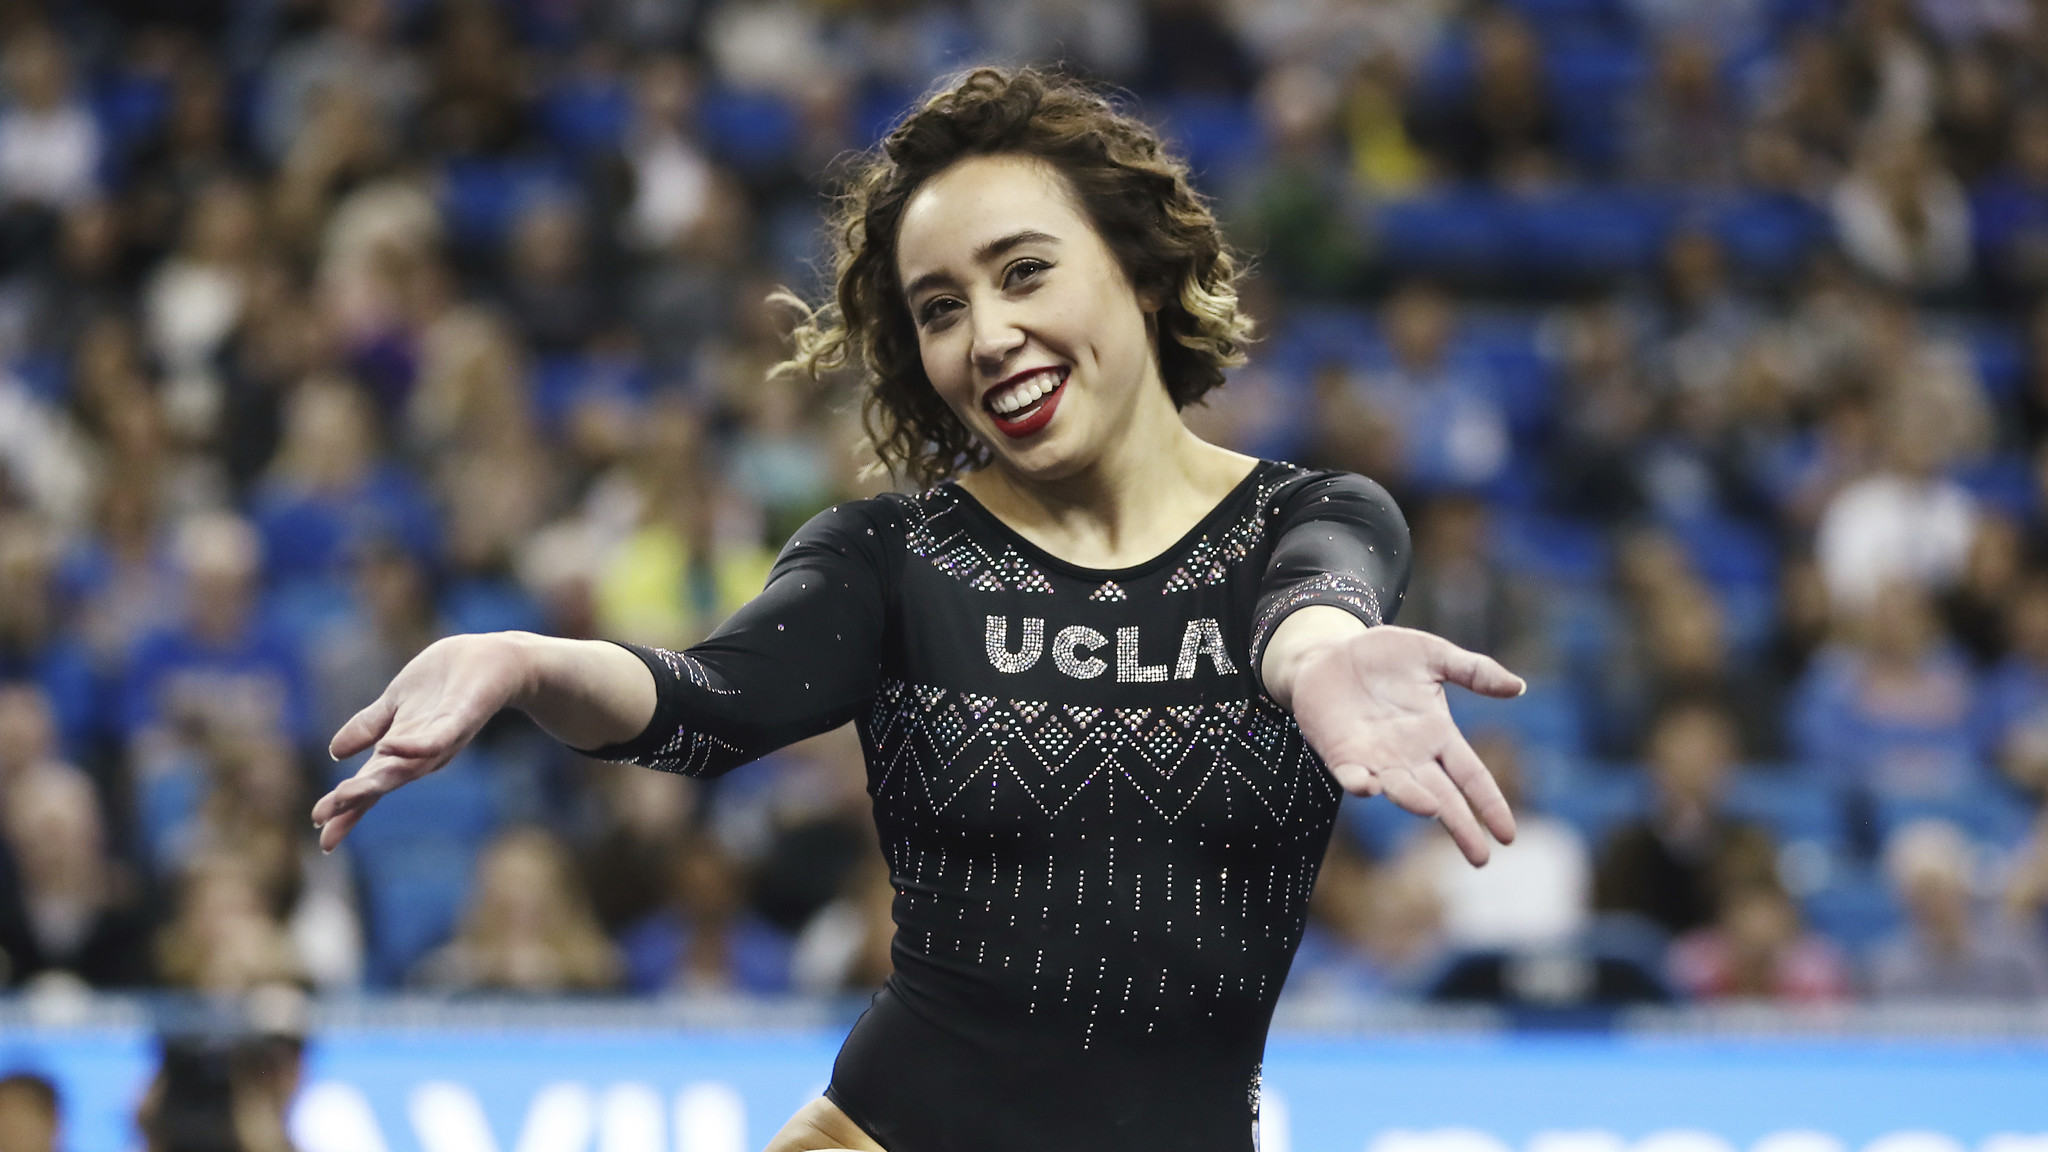 UCLA gymnast's stunning floor routine goes viral: 'A 10 isn't enough'